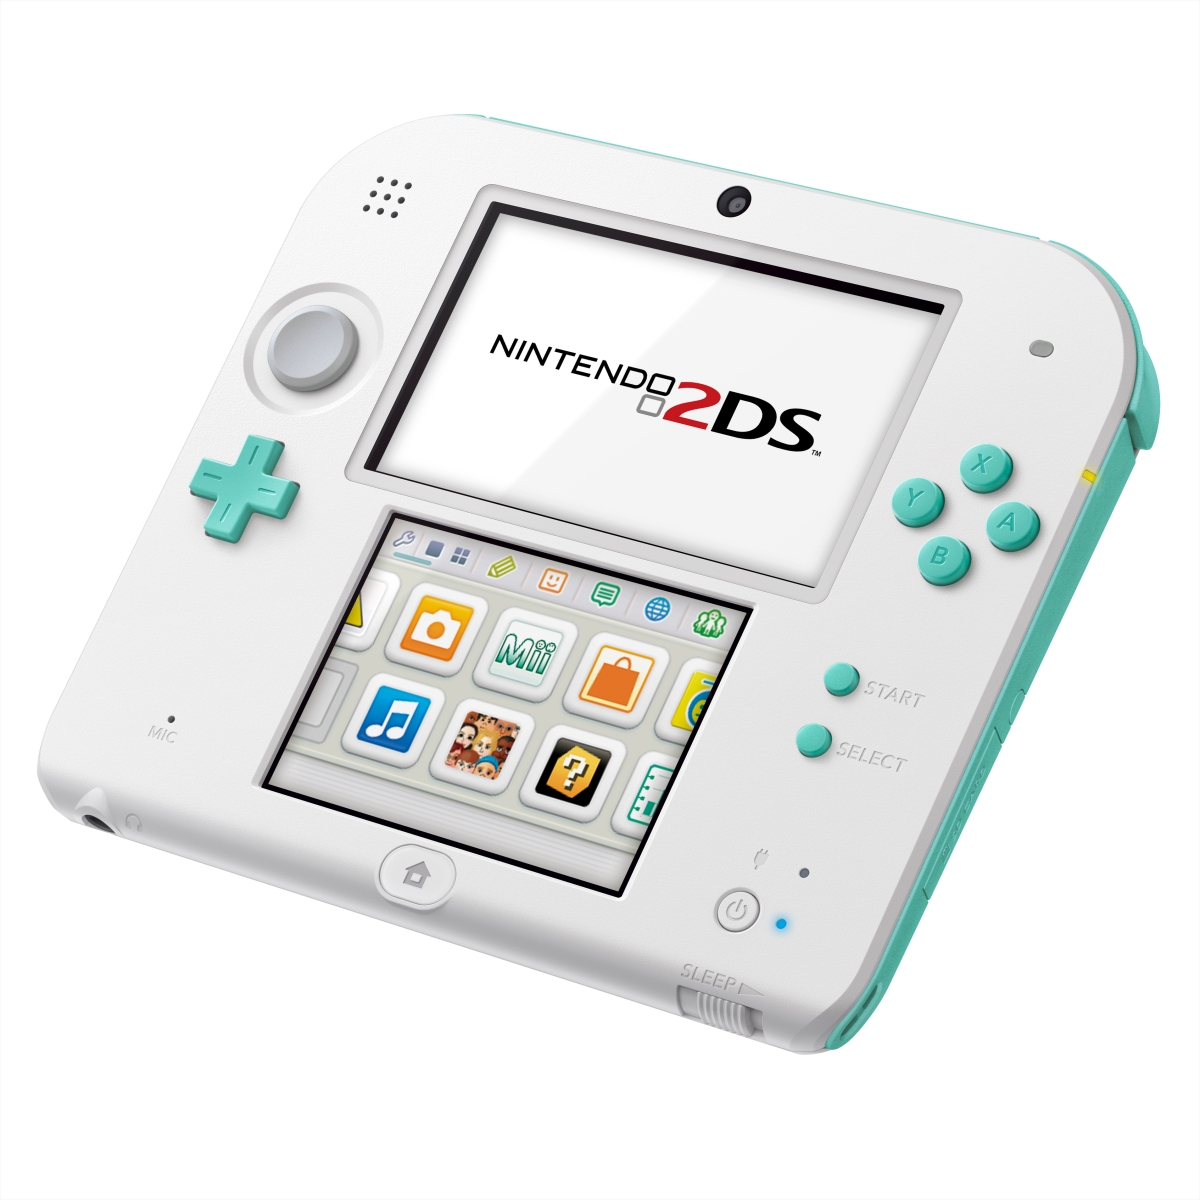 New Update Released For Nintendo 3DS Family OfSystems